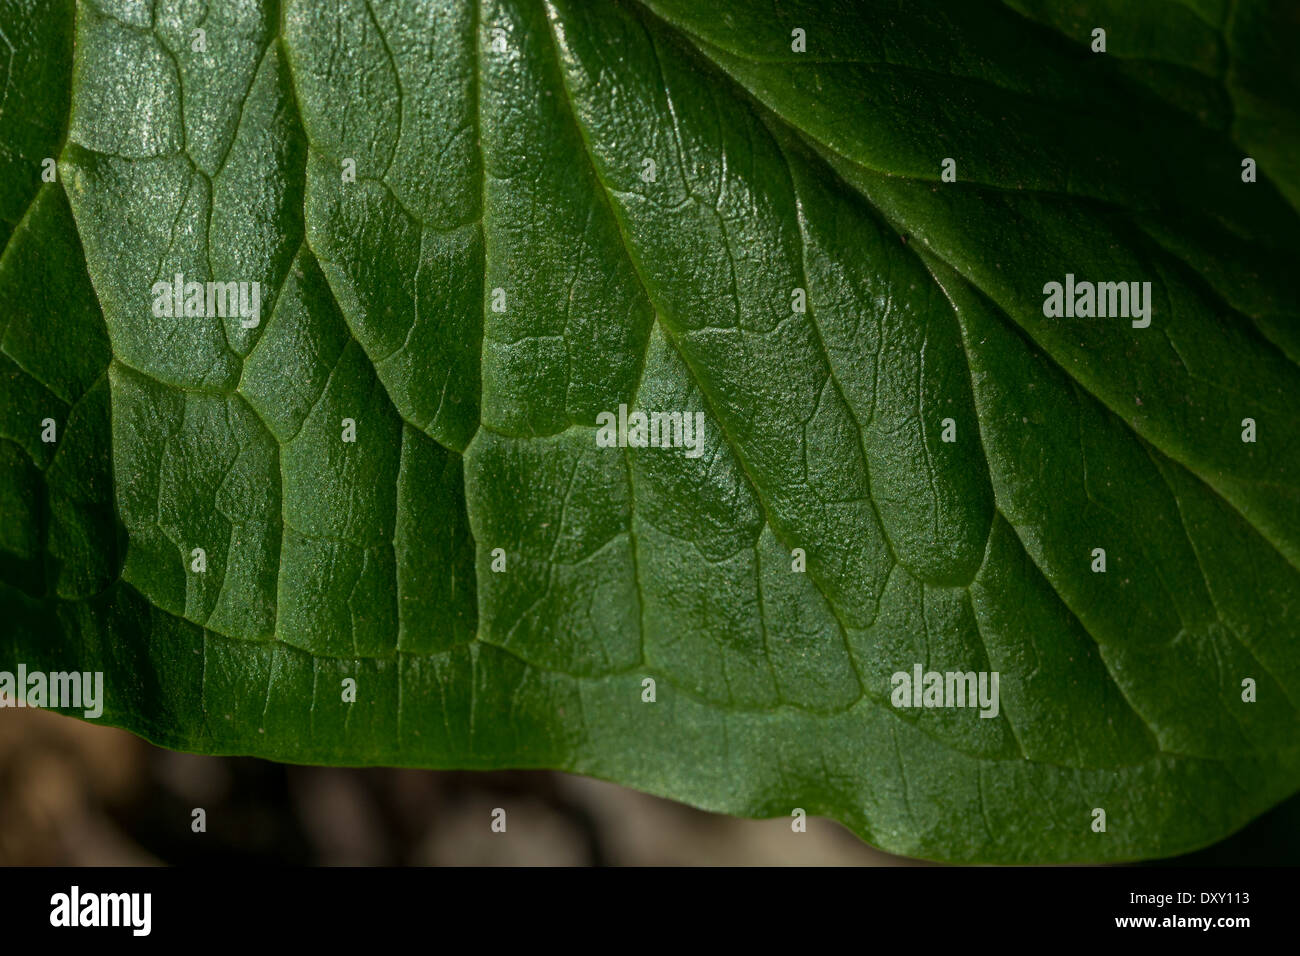 Leaf detail of Arum maculatum / Cuckoo-pint / Lords-and-Ladies - a toxic plant. FOCUS horizontal mid-field.  Called Cuckoo-pint, Lords and Ladies. - Stock Image